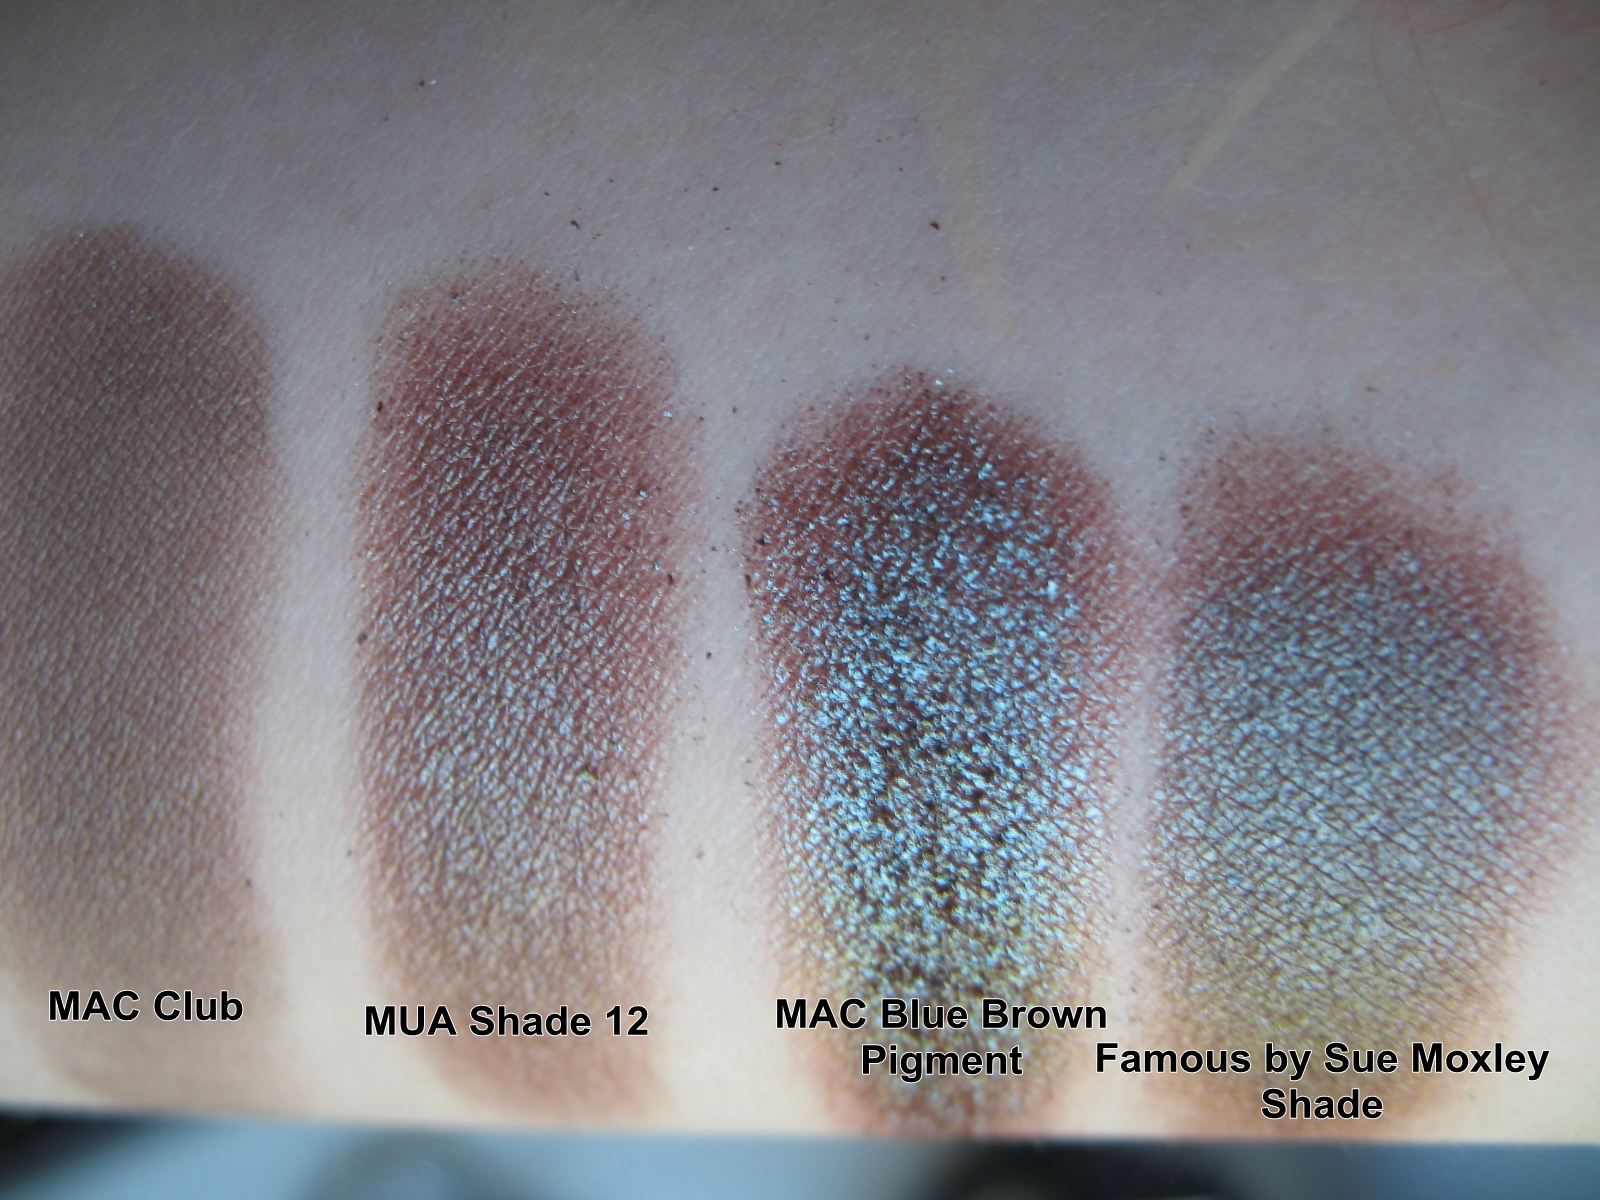 mac club eyeshadow and its dupes